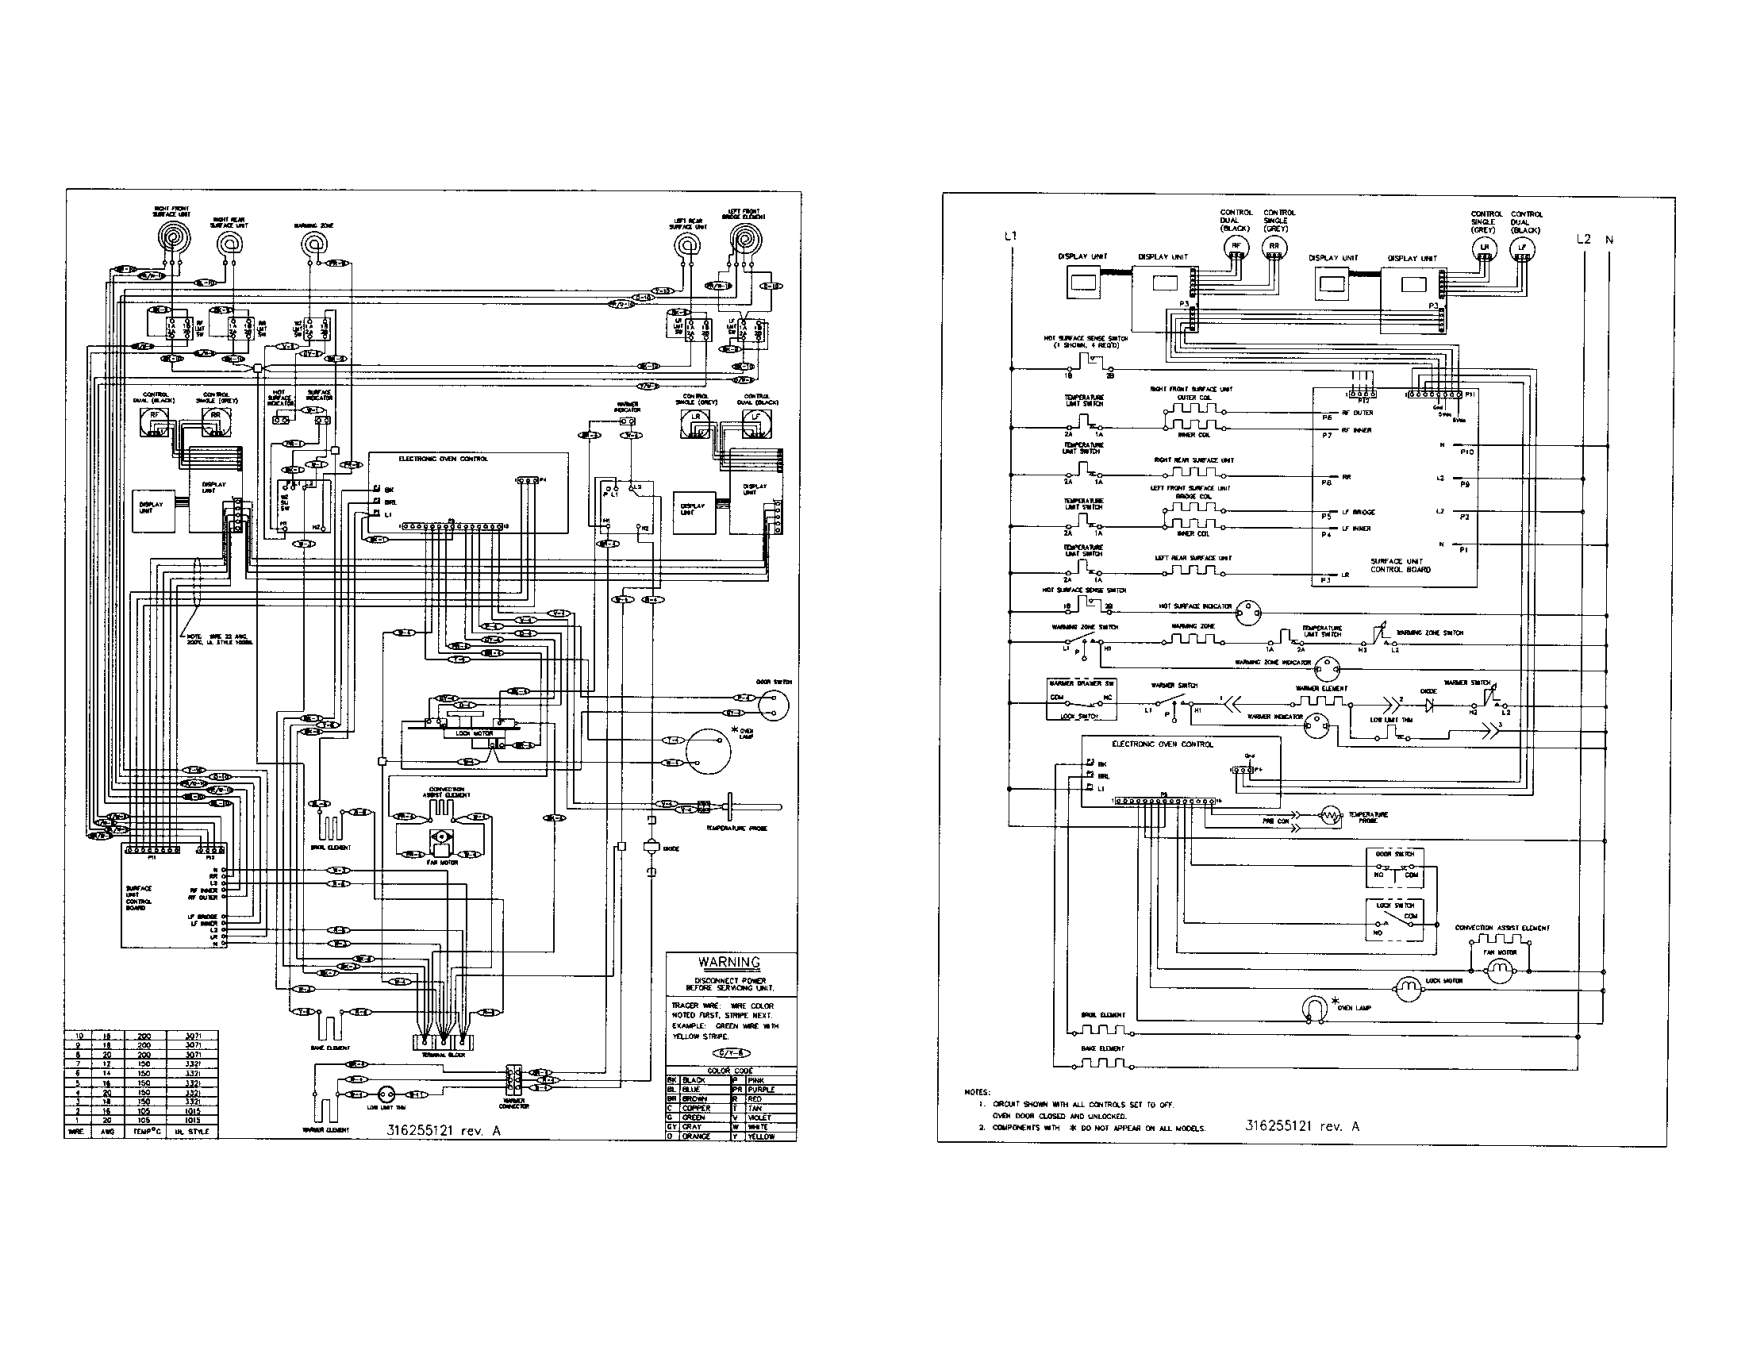 ge electric stove wiring diagram wiring diagrams ge electric oven wiring diagram roketa 110cc wire